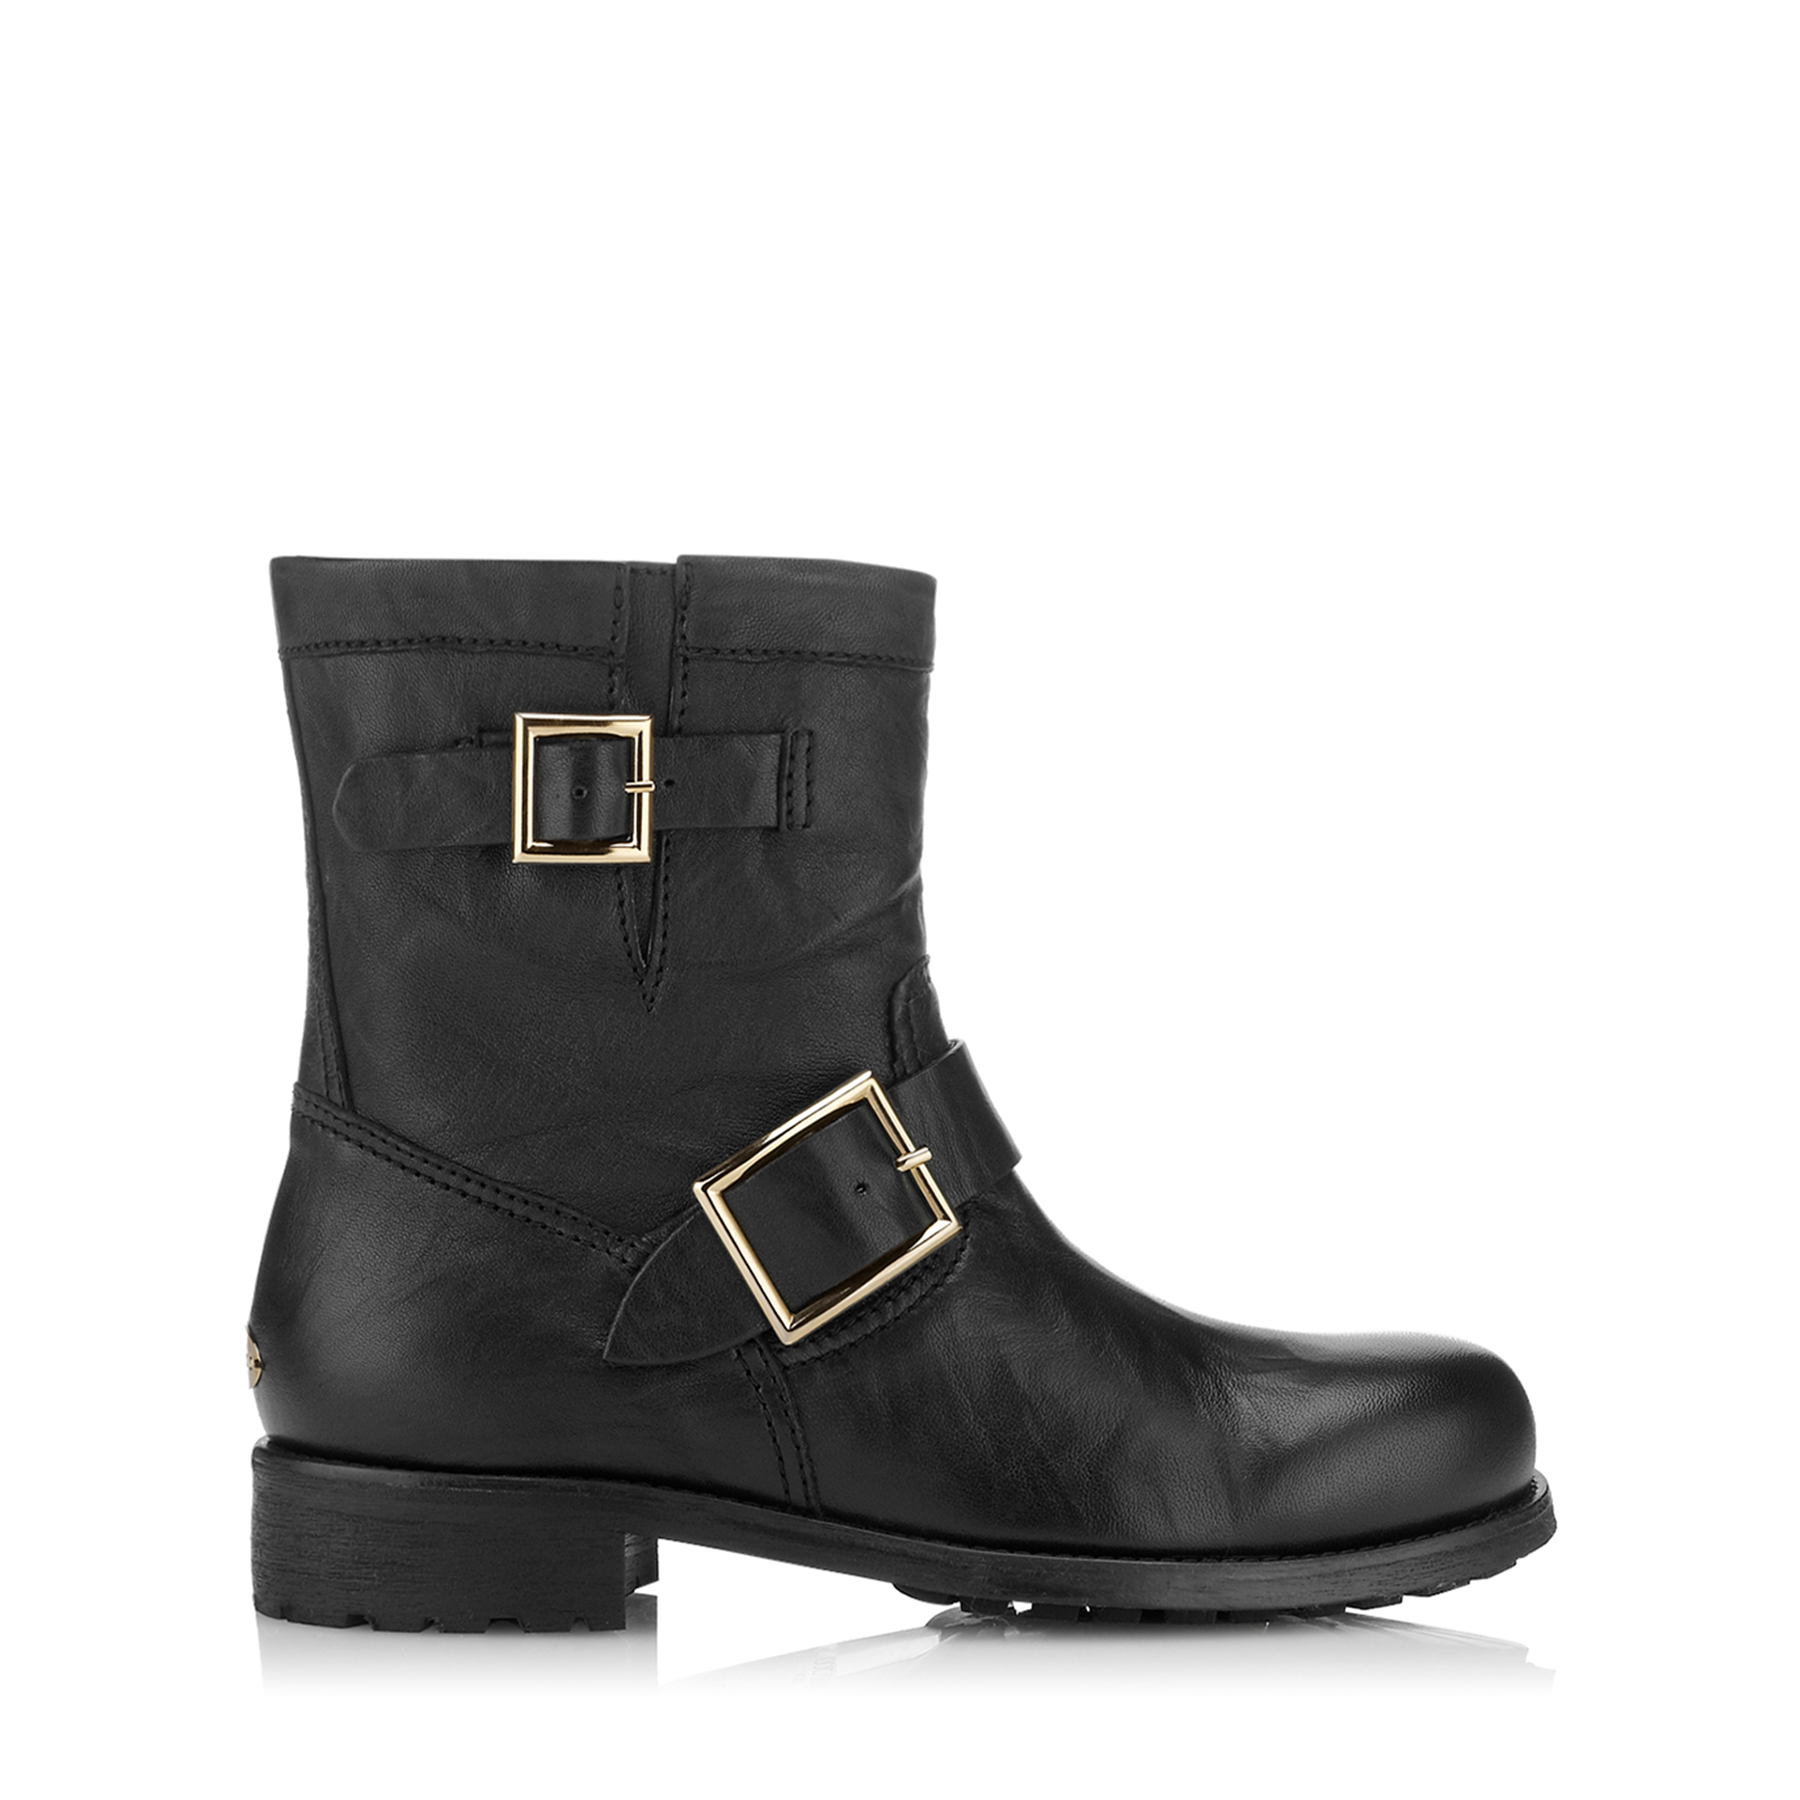 YOUTH Black Biker Leather Biker Boots by Jimmy Choo